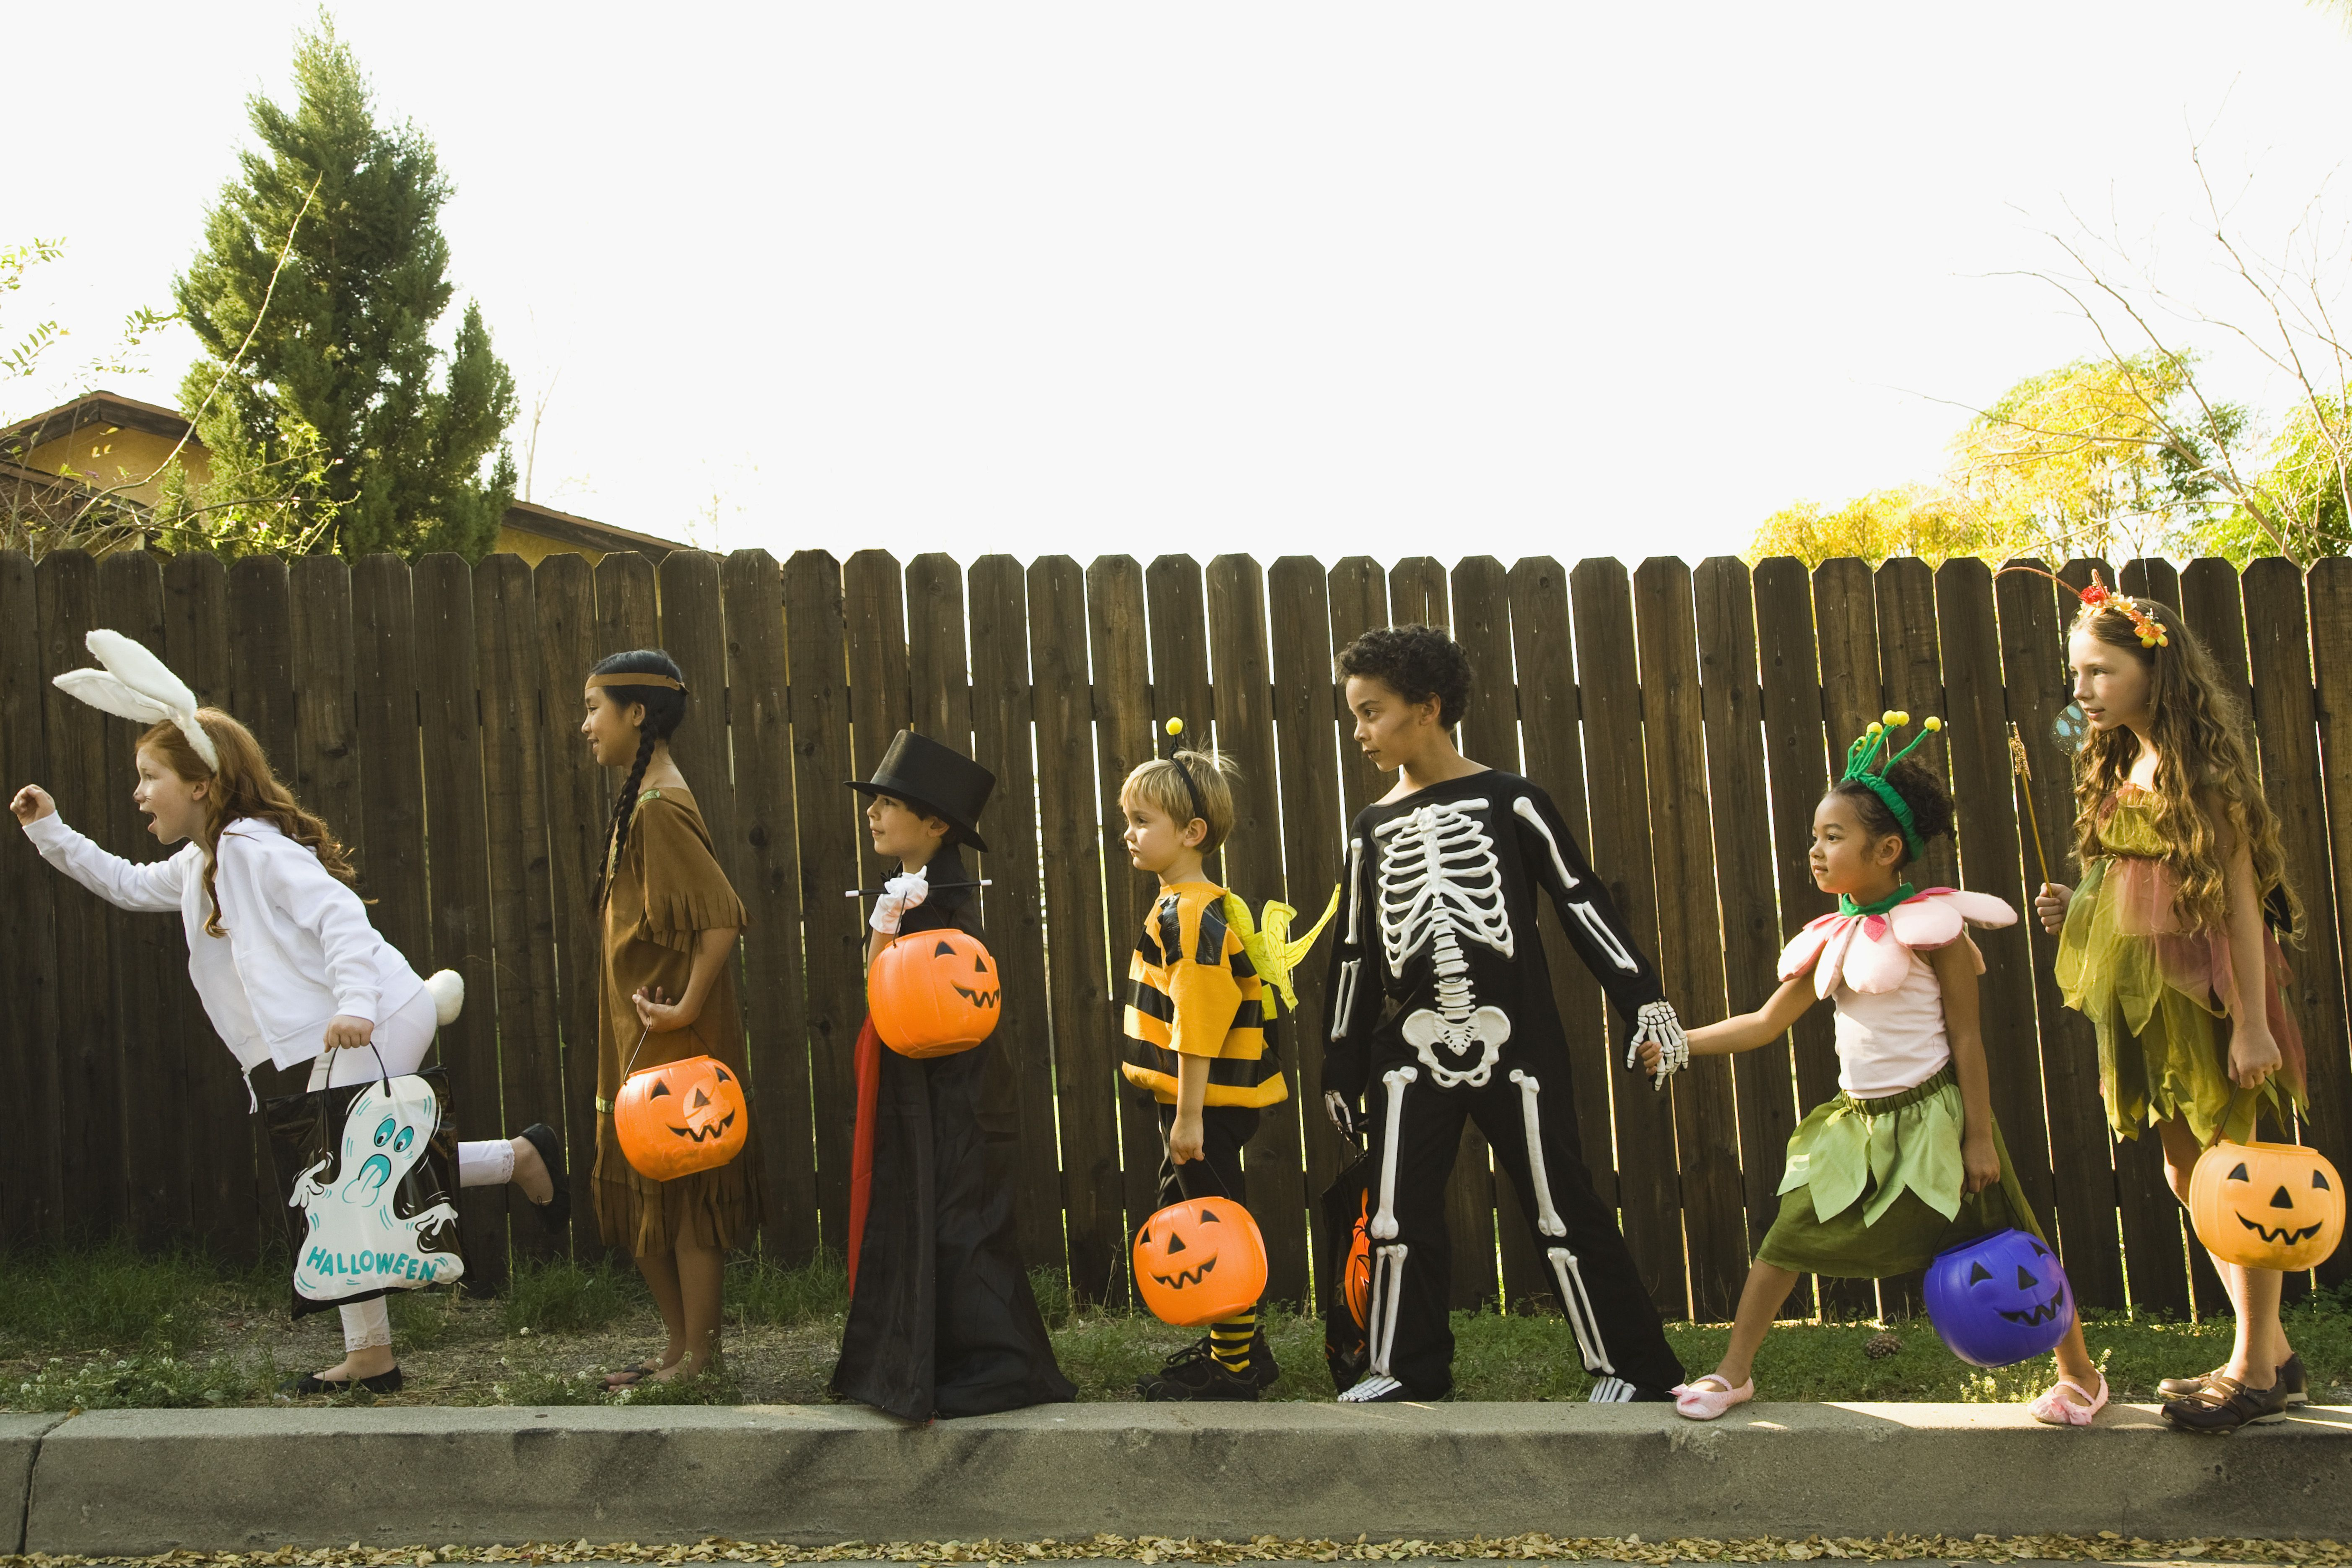 More Than 150,000 People Have Signed This Petition to Change the Date of Halloween